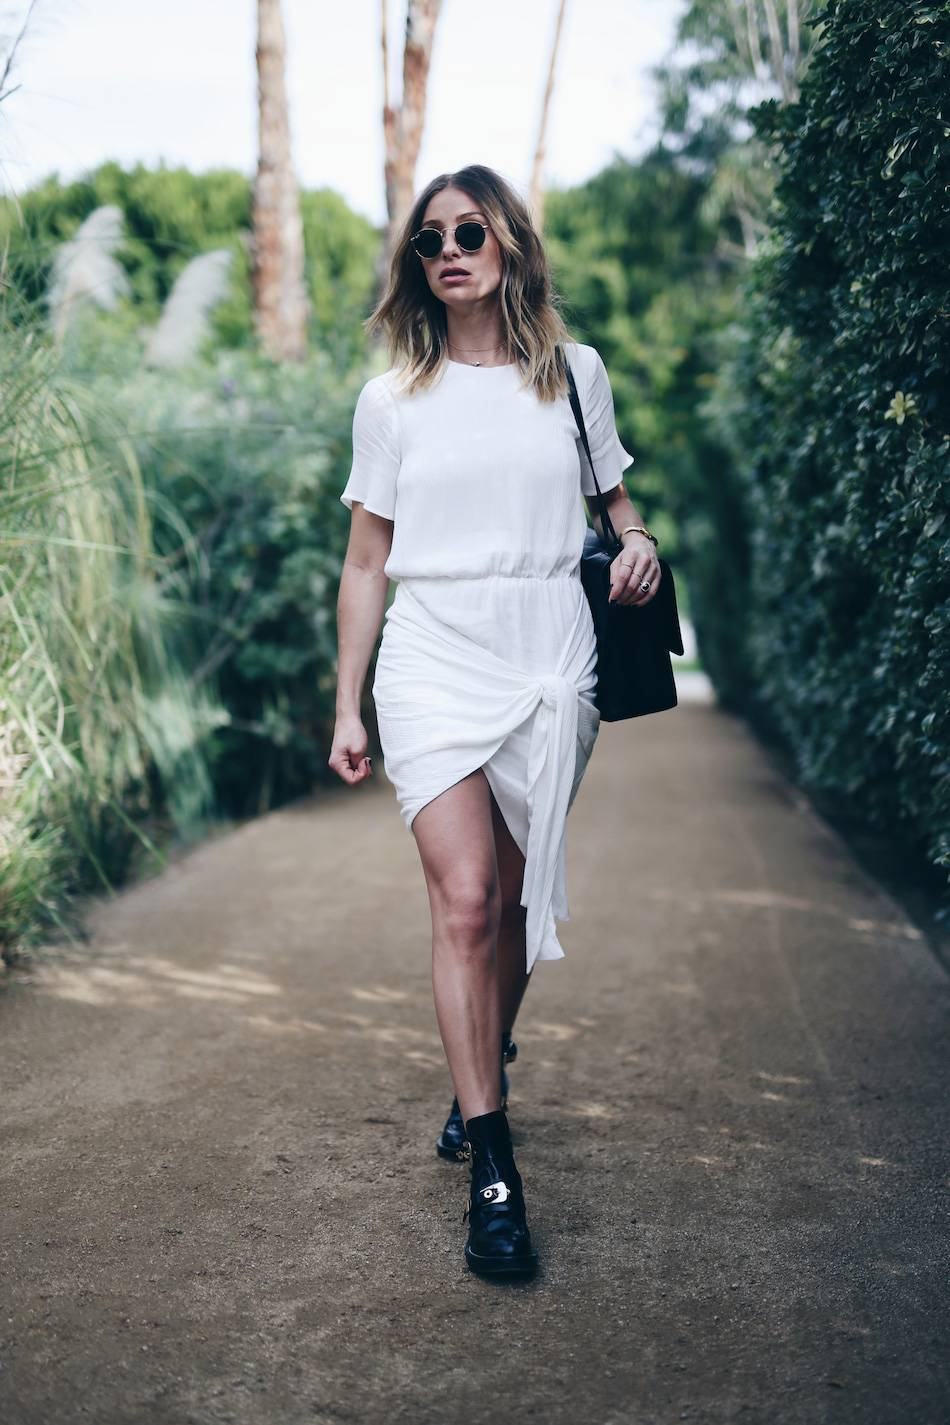 Style-and-beauty-blogger-Jill-Lansky-of-The-August-Diaries-in-white-wrap-Stylestalker-dress-Balenciaga-boots-Dagne-Dover-bag-at-the-Parker-Palm-Springs